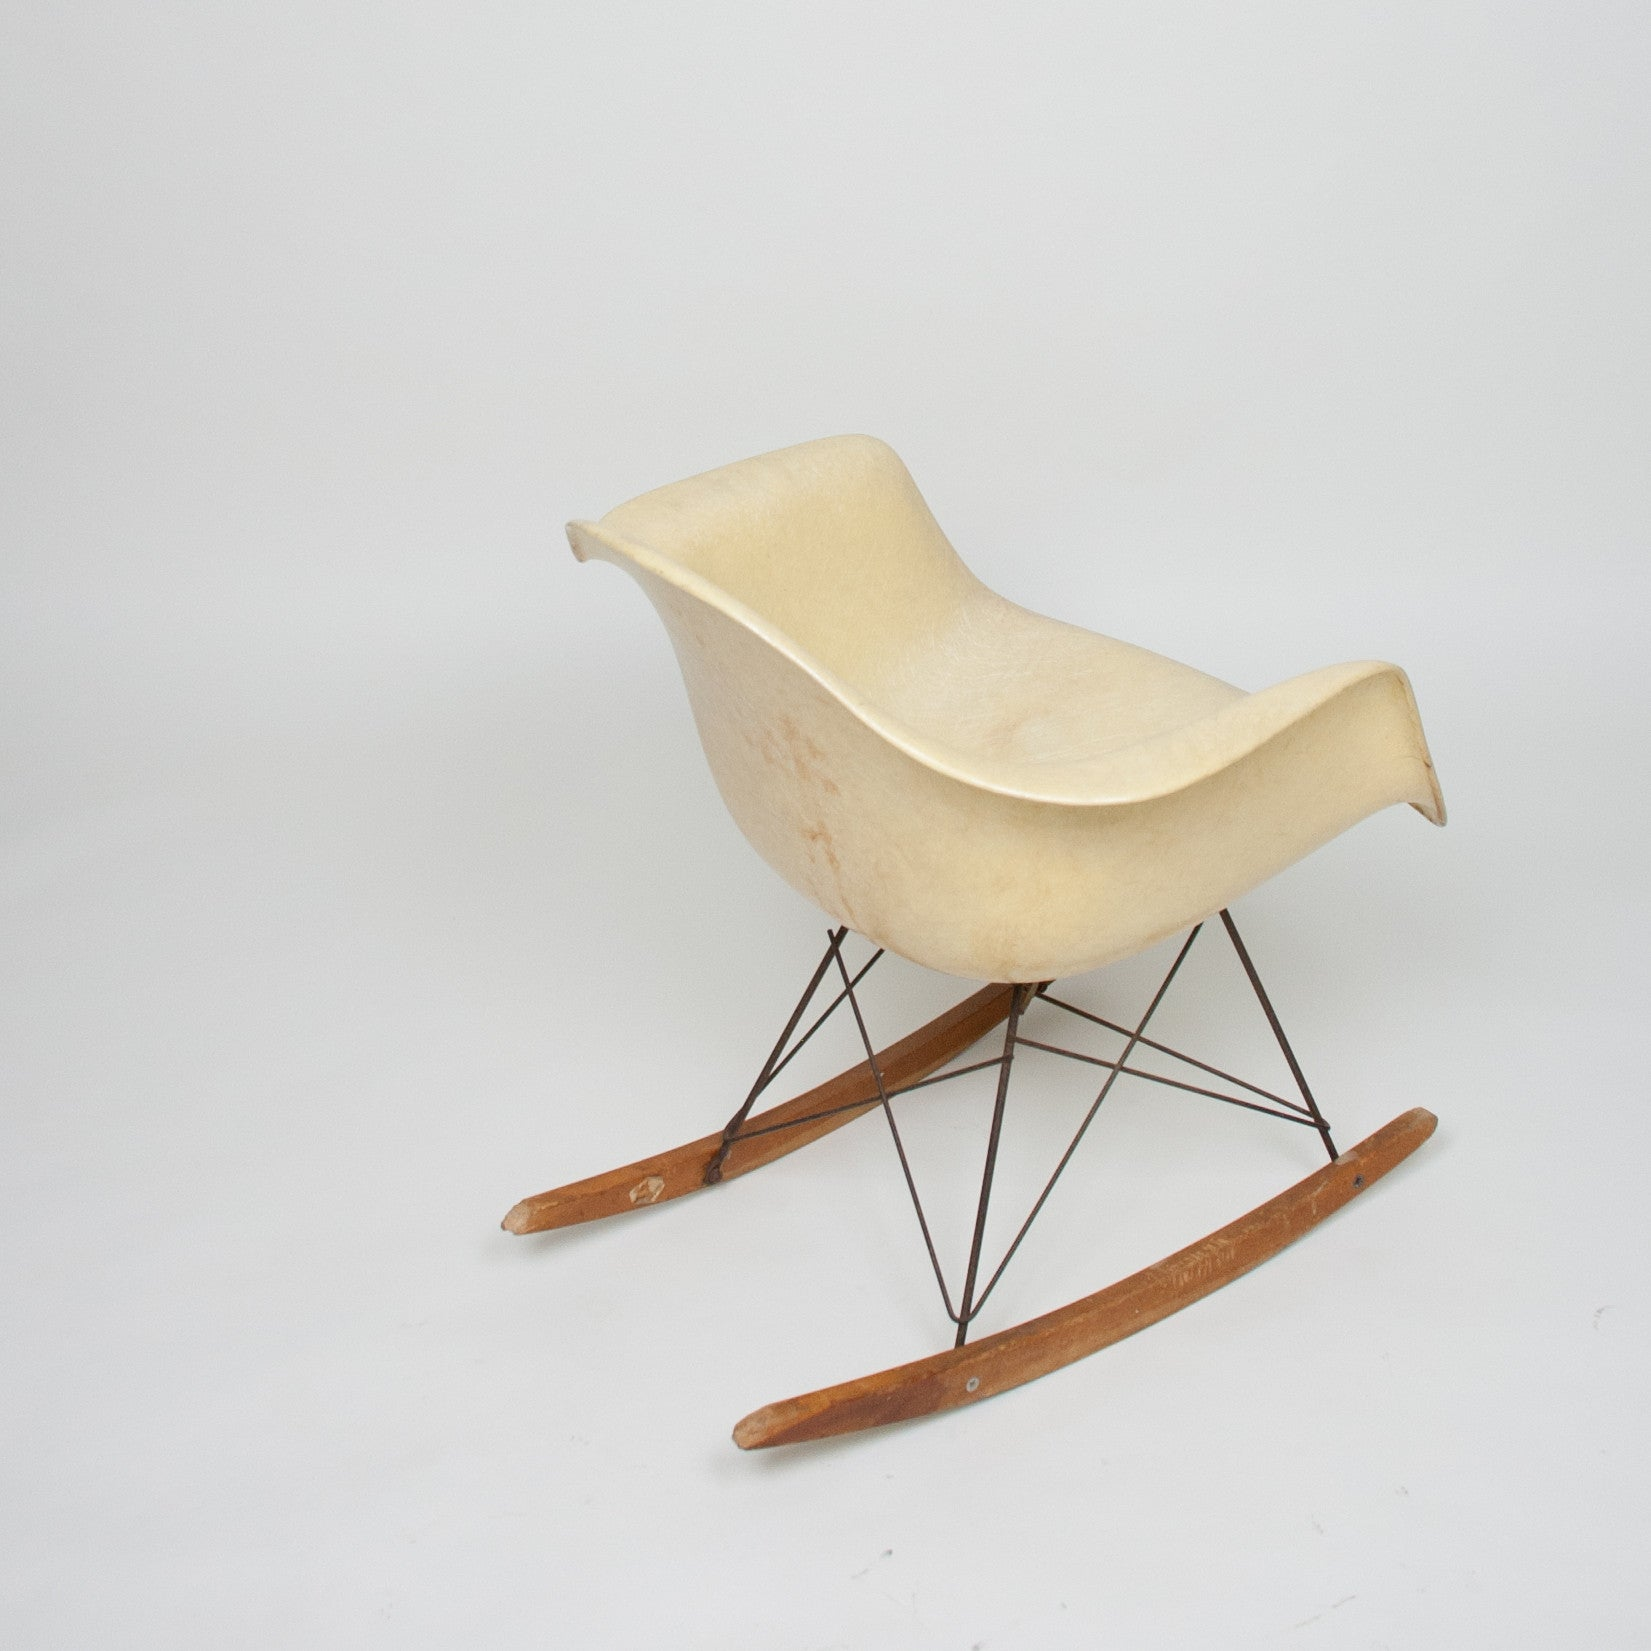 SOLD Eames Herman Miller Zenith Rope Edge Ankle Breaker Original Rocker Rocking Chair Marked